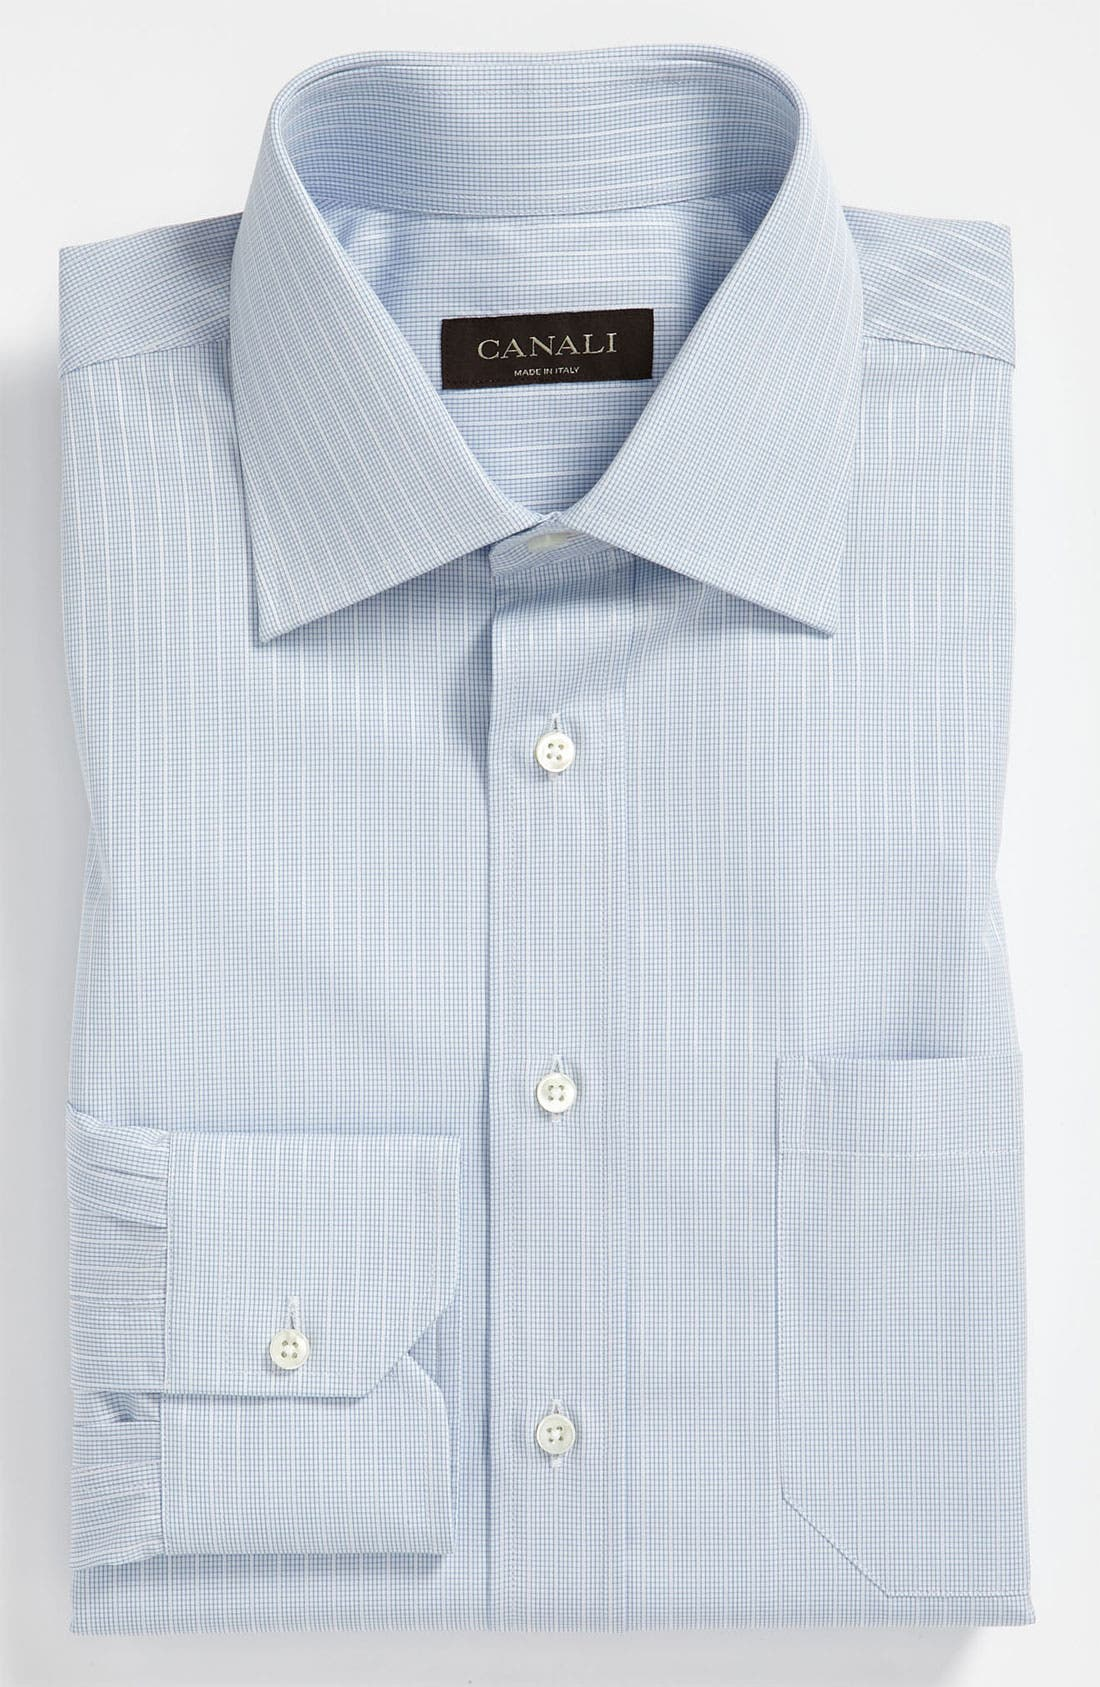 Alternate Image 1 Selected - Canali Regular Fit Dress Shirt